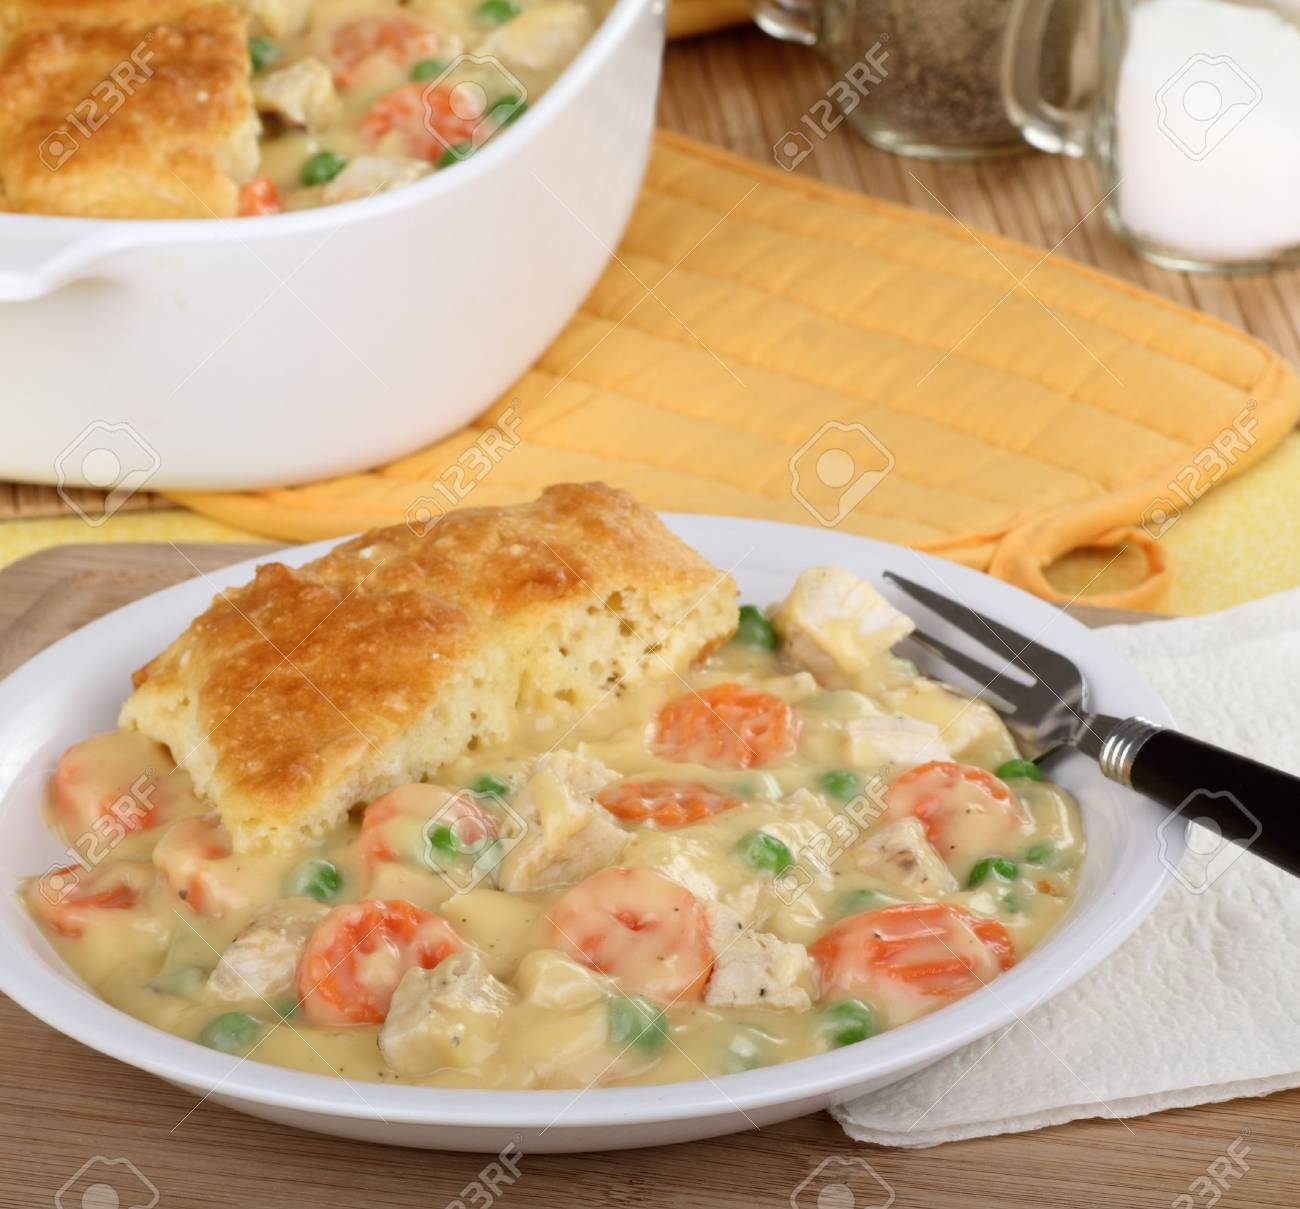 Chicken pot pie with carrots, peas and biscuit Stock Photo - 16657104